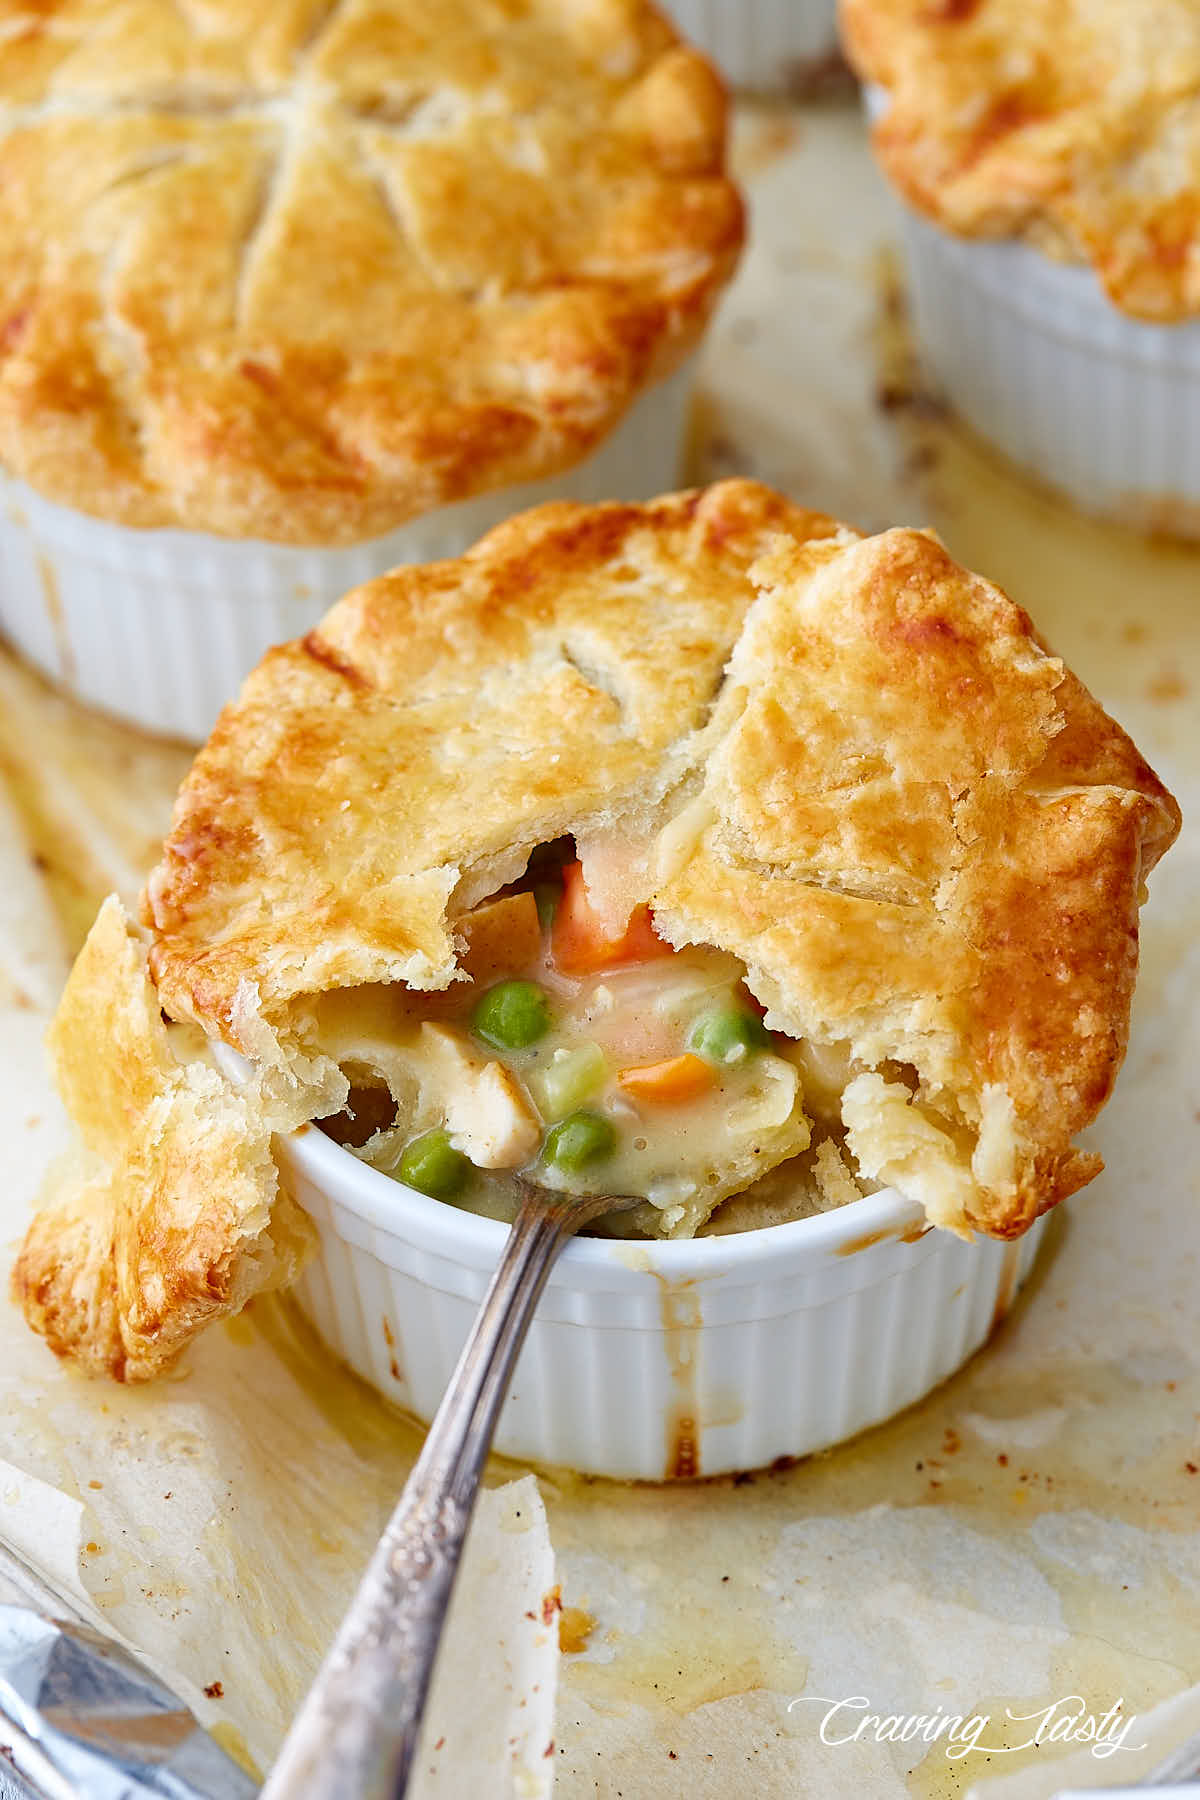 Chicken pot pie, in a ramekin, part of crust removed, a spoon inserted into creamy pie filling, chunks of chicken, peas and carrots visible.